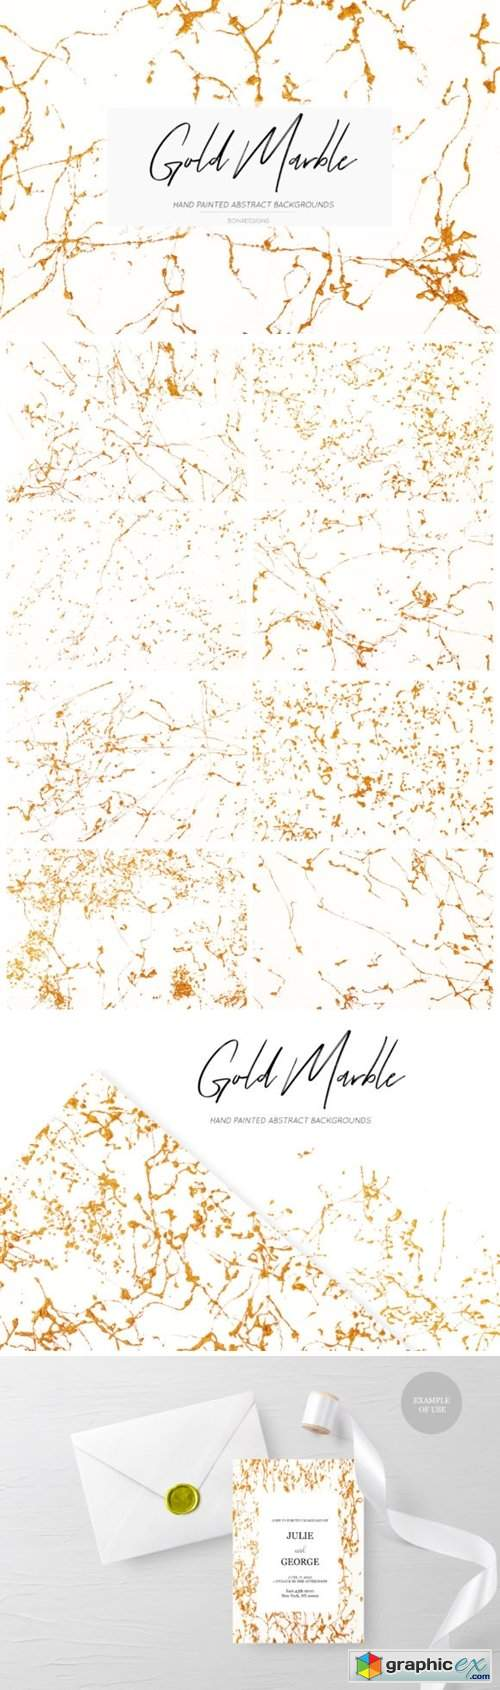 Gold Abstract Marble Backgrounds